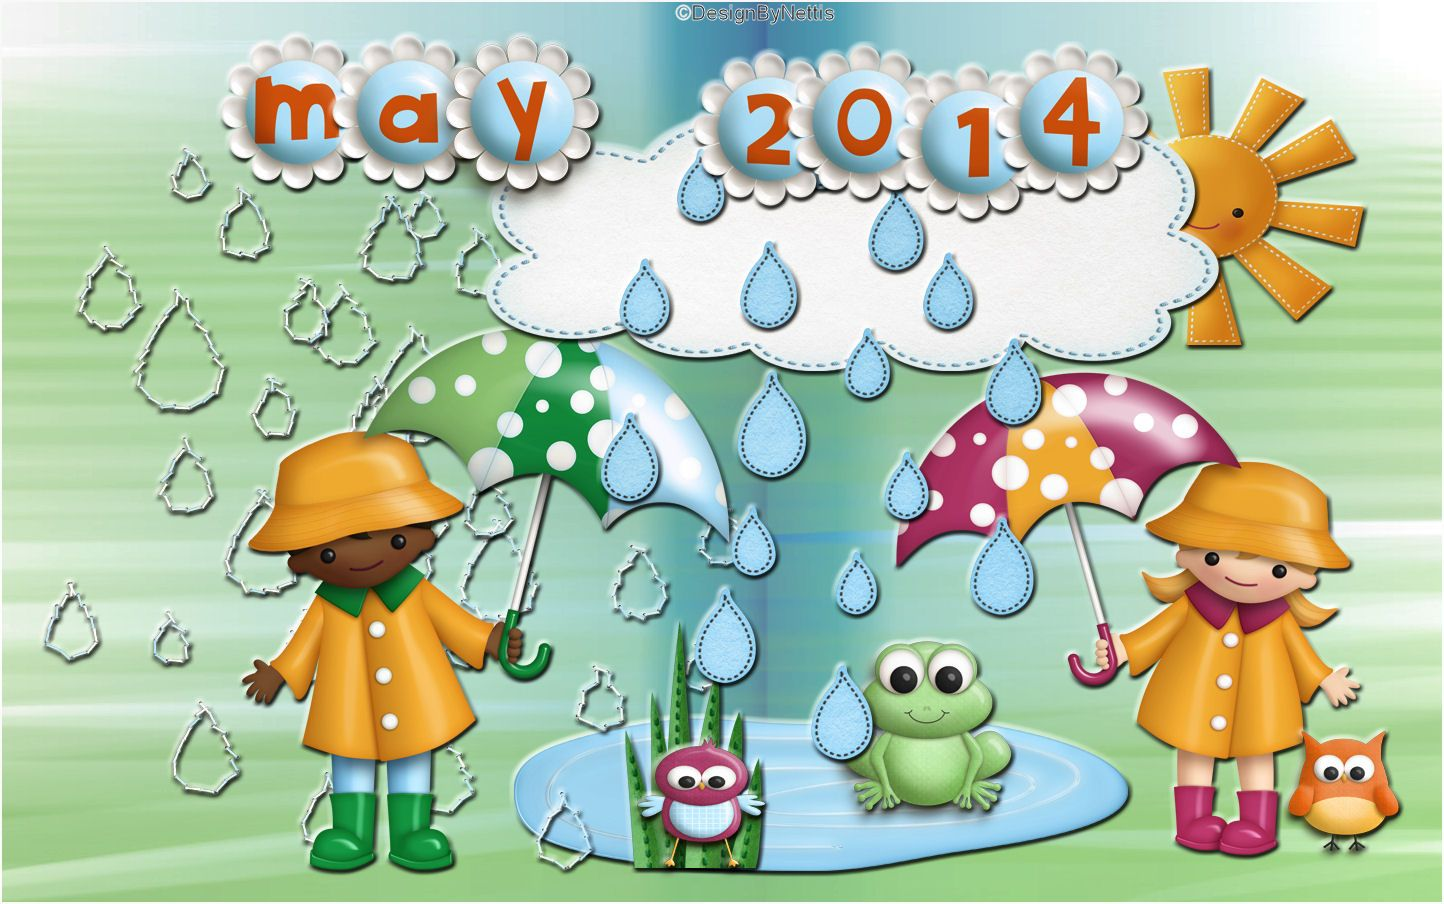 desktops wallpapers for may 2014 2nd of may 2014 did you